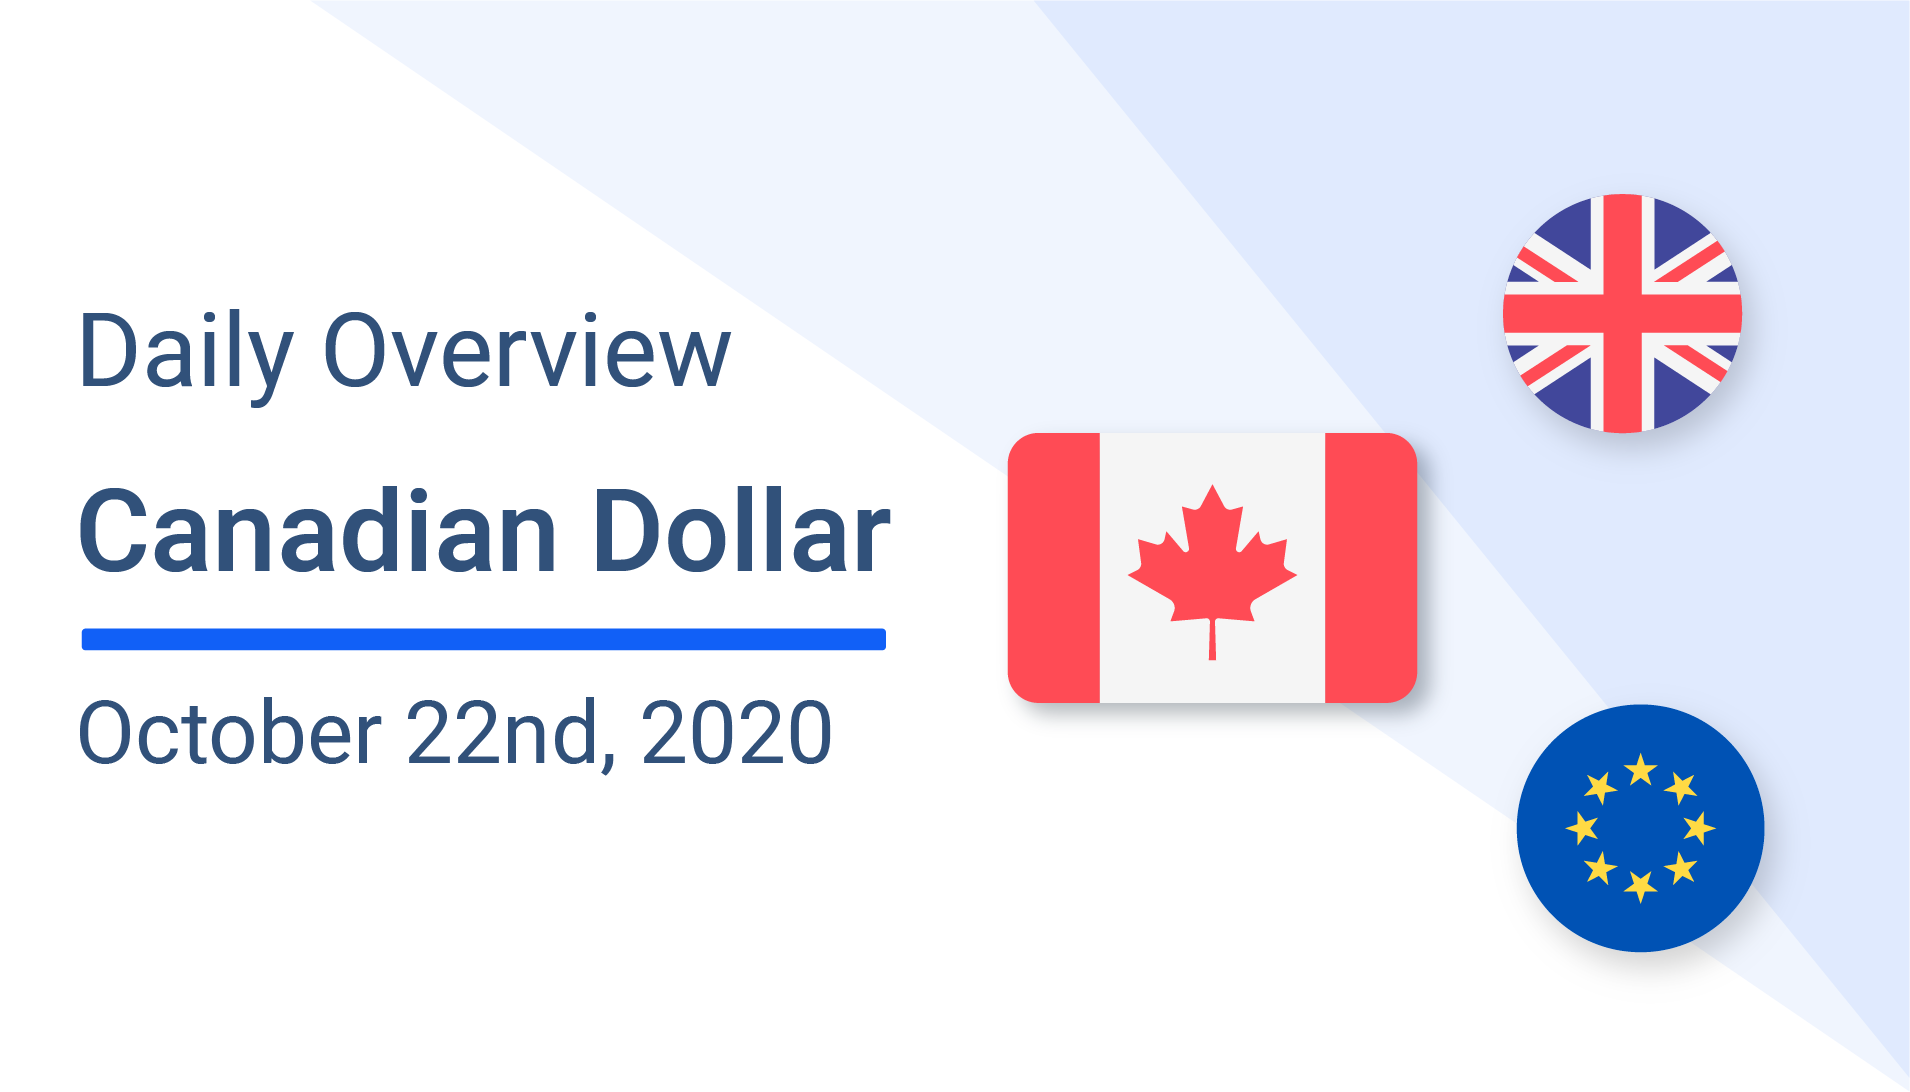 Canadian dollar (CAD) to British Pound (GBP) to European EURO (EUR) Daily Overview: October 22nd